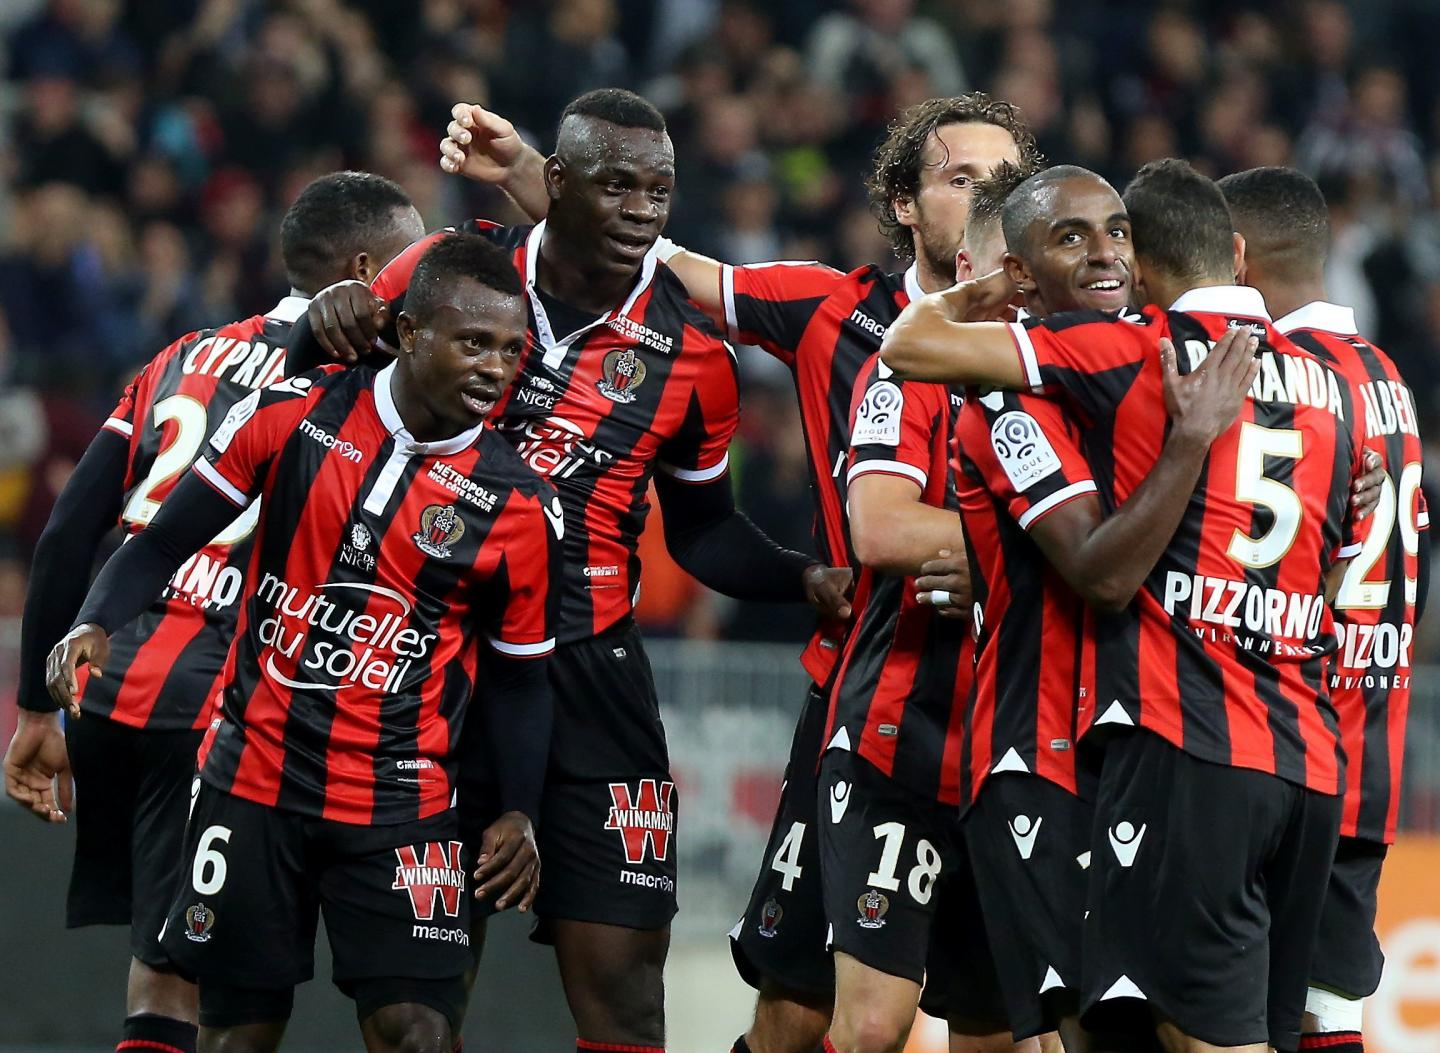 Regarder le football en direct : Résultat match Ligue 1 OGC Nice Montpellier et replay vidéo matchs Ligue 2